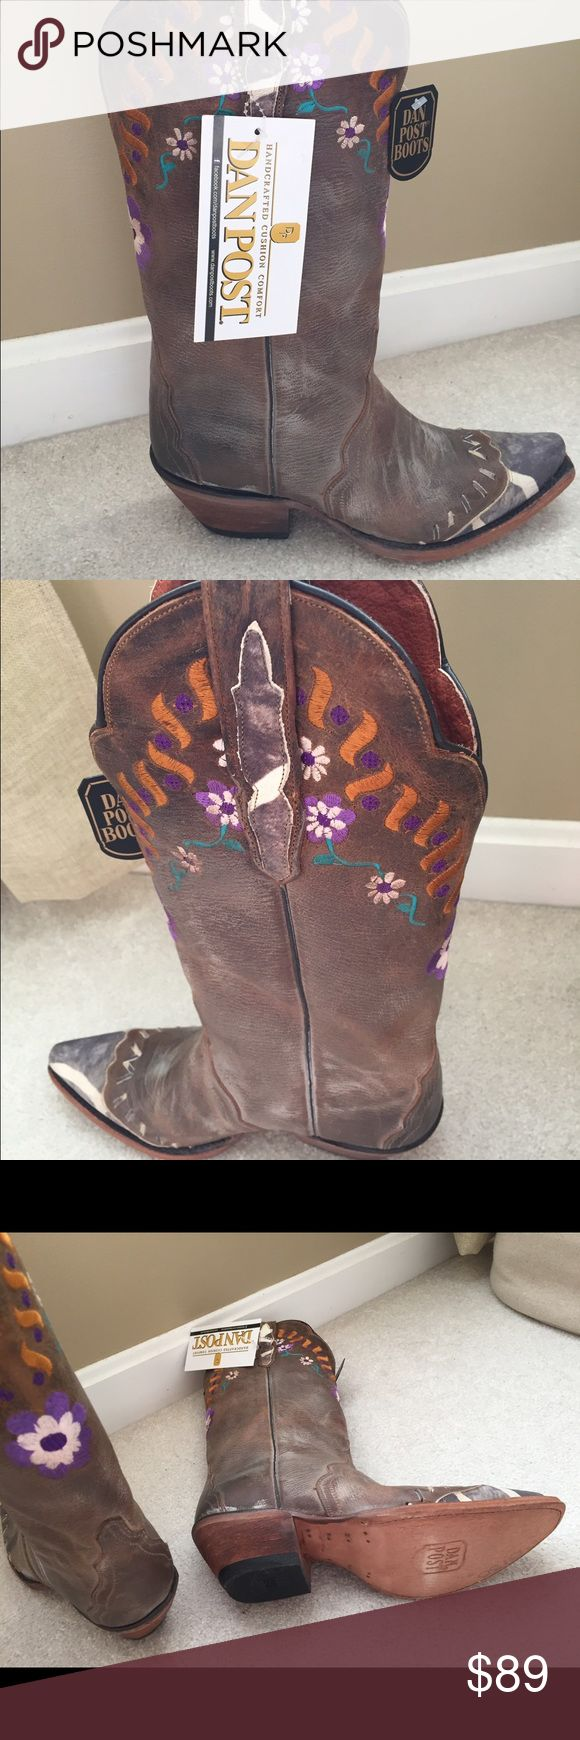 DanPost women's Western Boots leather, never worn Distress leather and embroidered flowers/animal print DanPost Shoes Ankle Boots & Booties